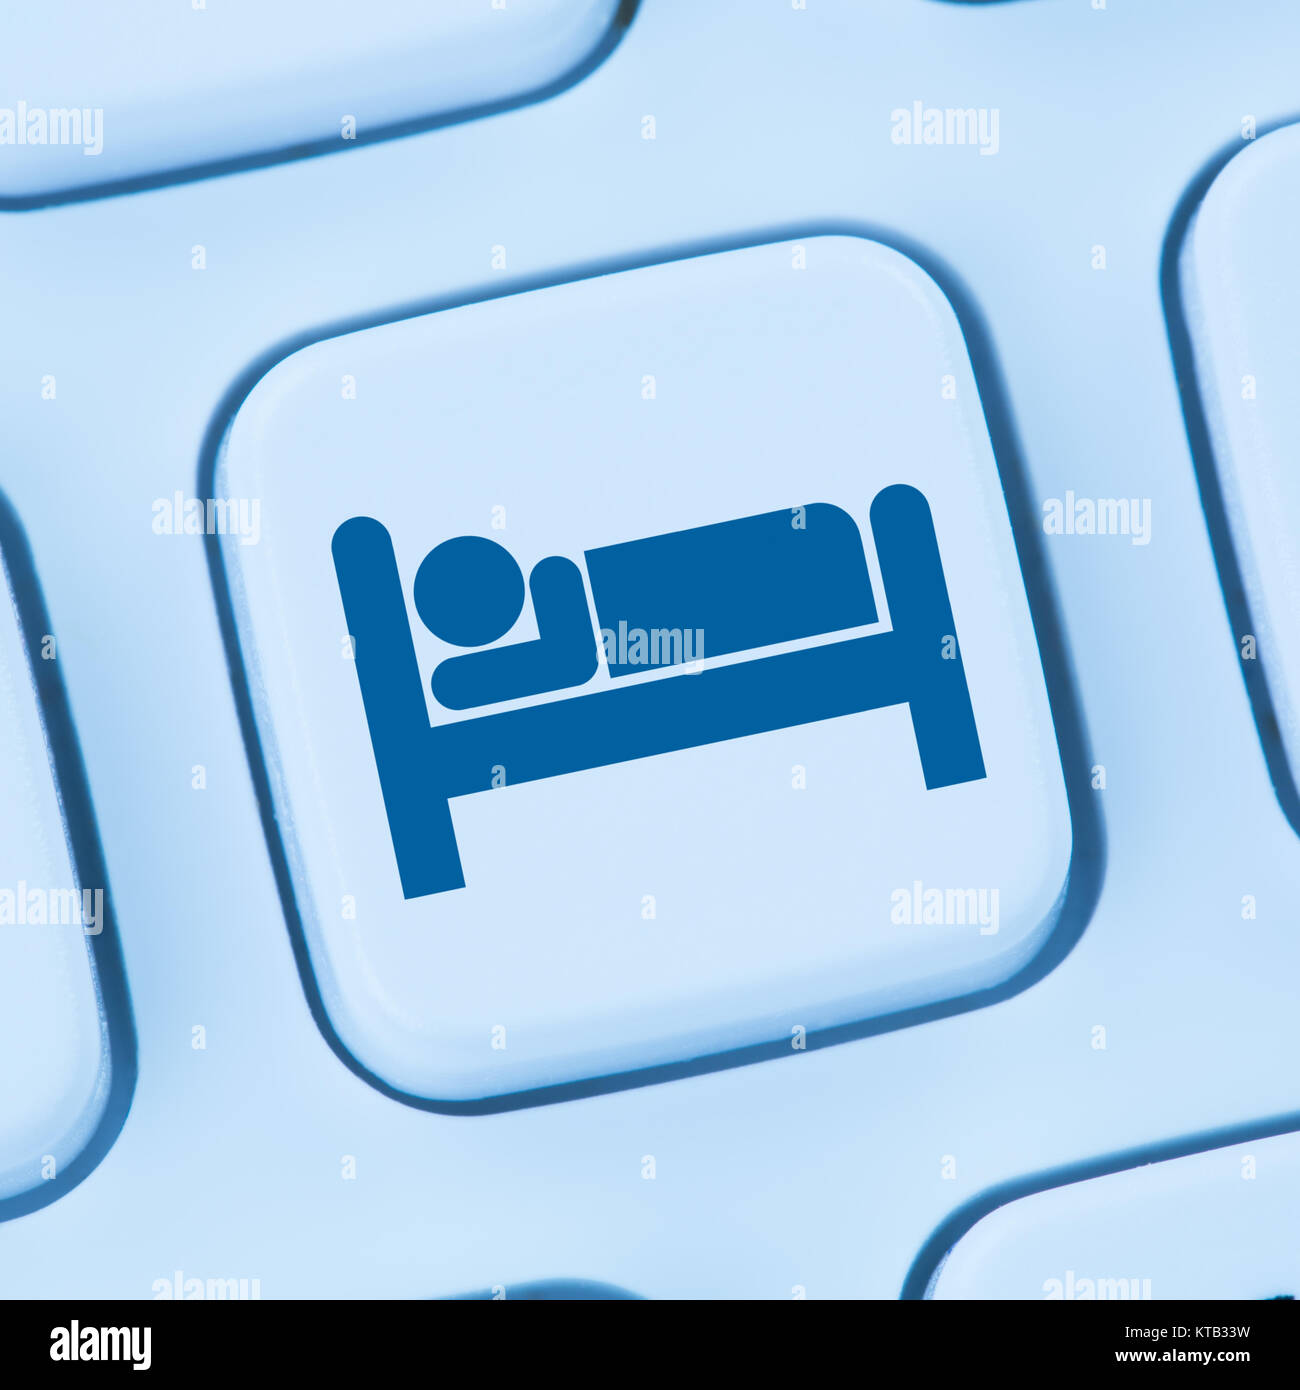 hotel accommodation hotel rooms travel online internet web computer - Stock Image